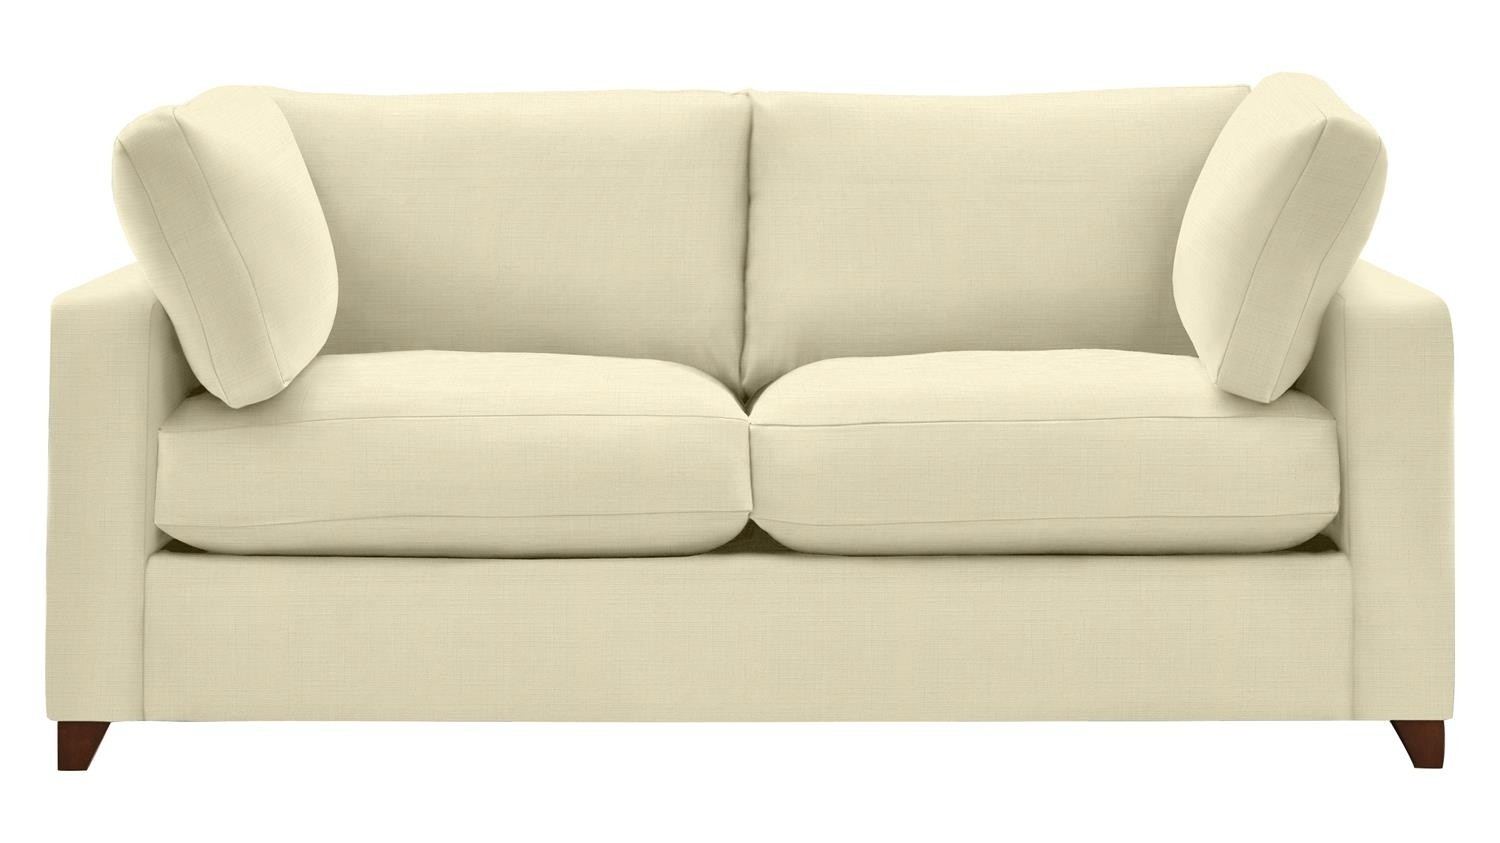 The Somerton 3 Seater Sofa Bed